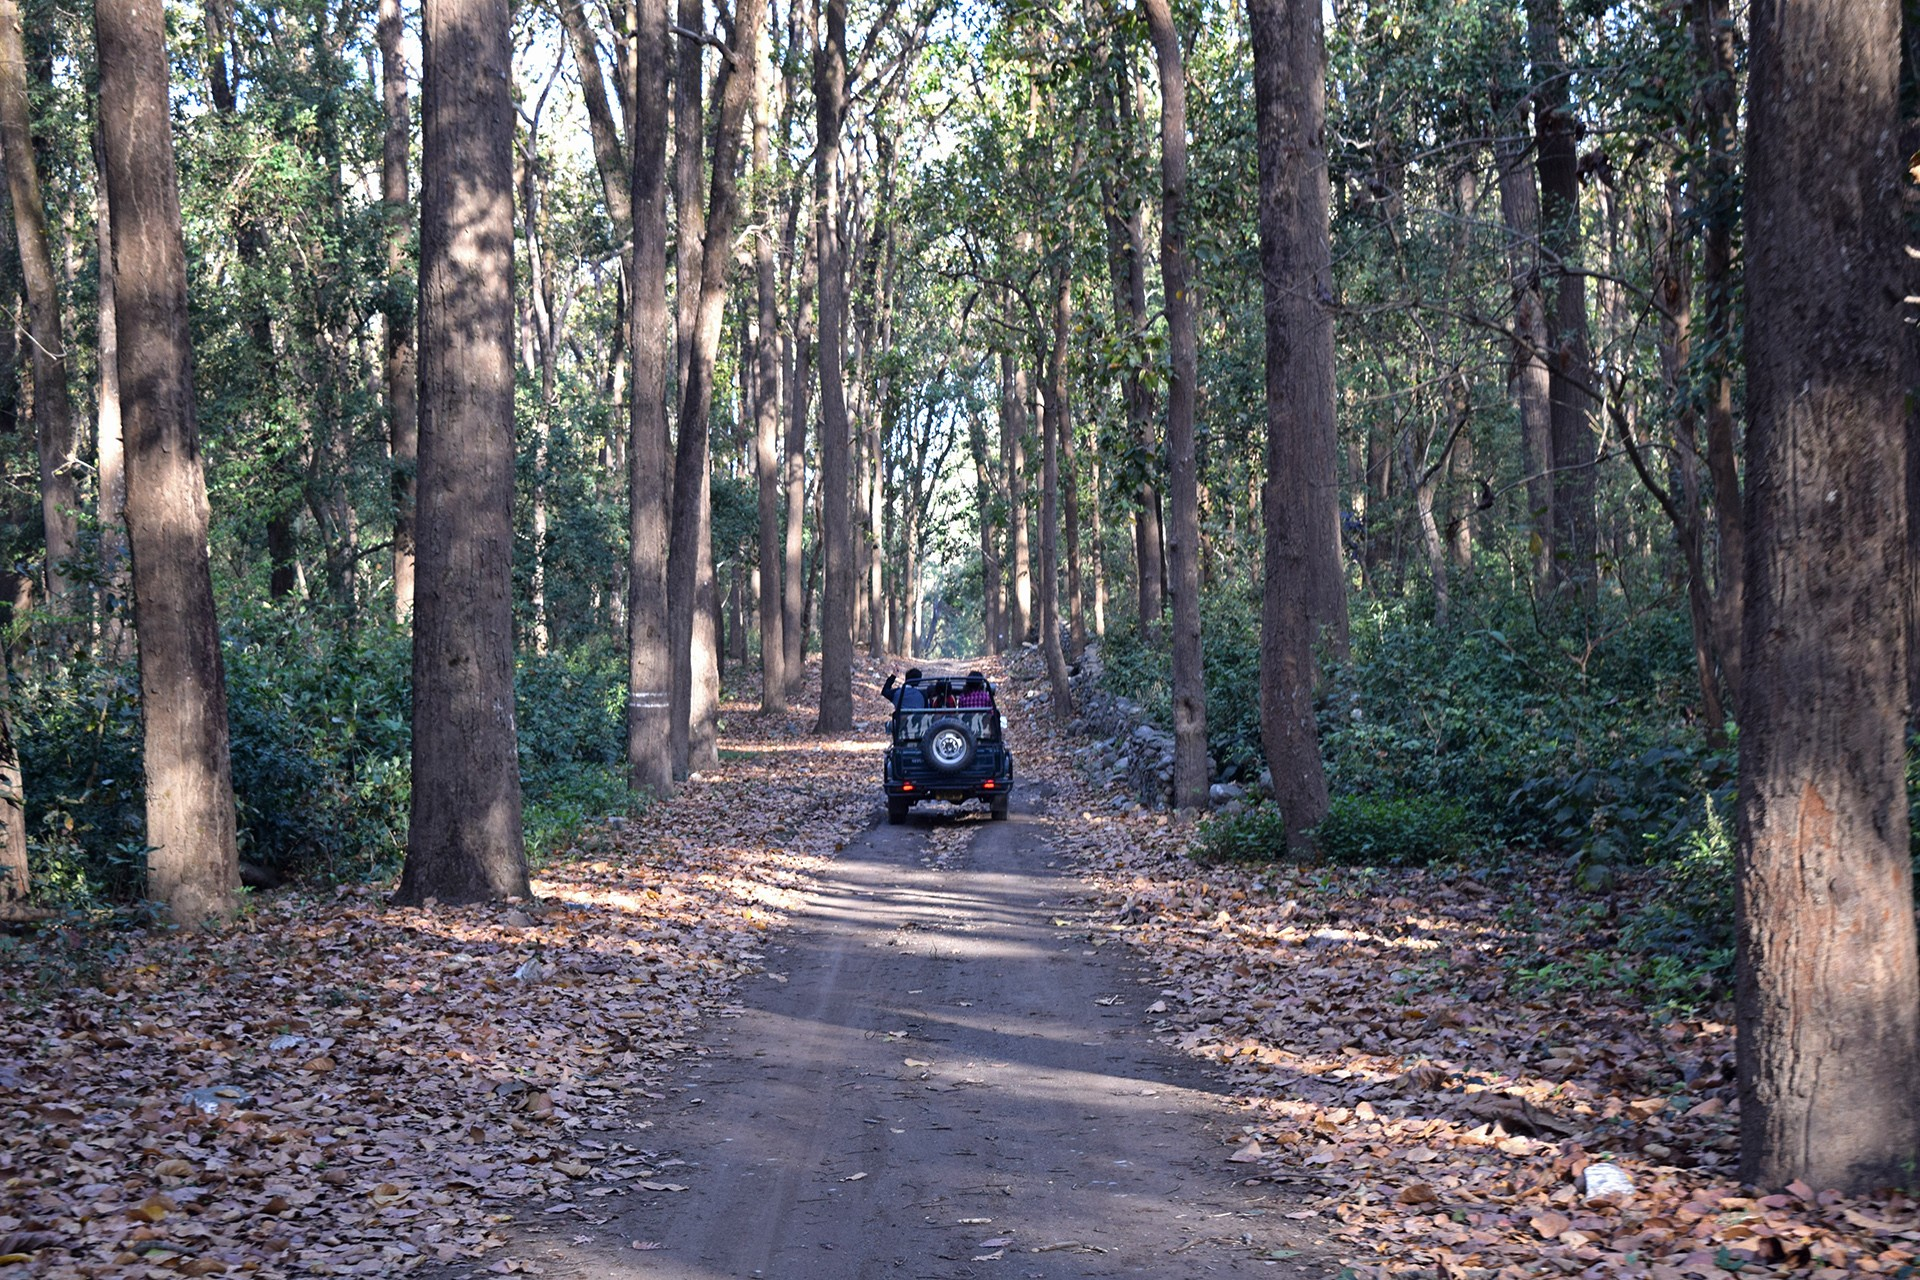 Jungle safari in Rishikesh